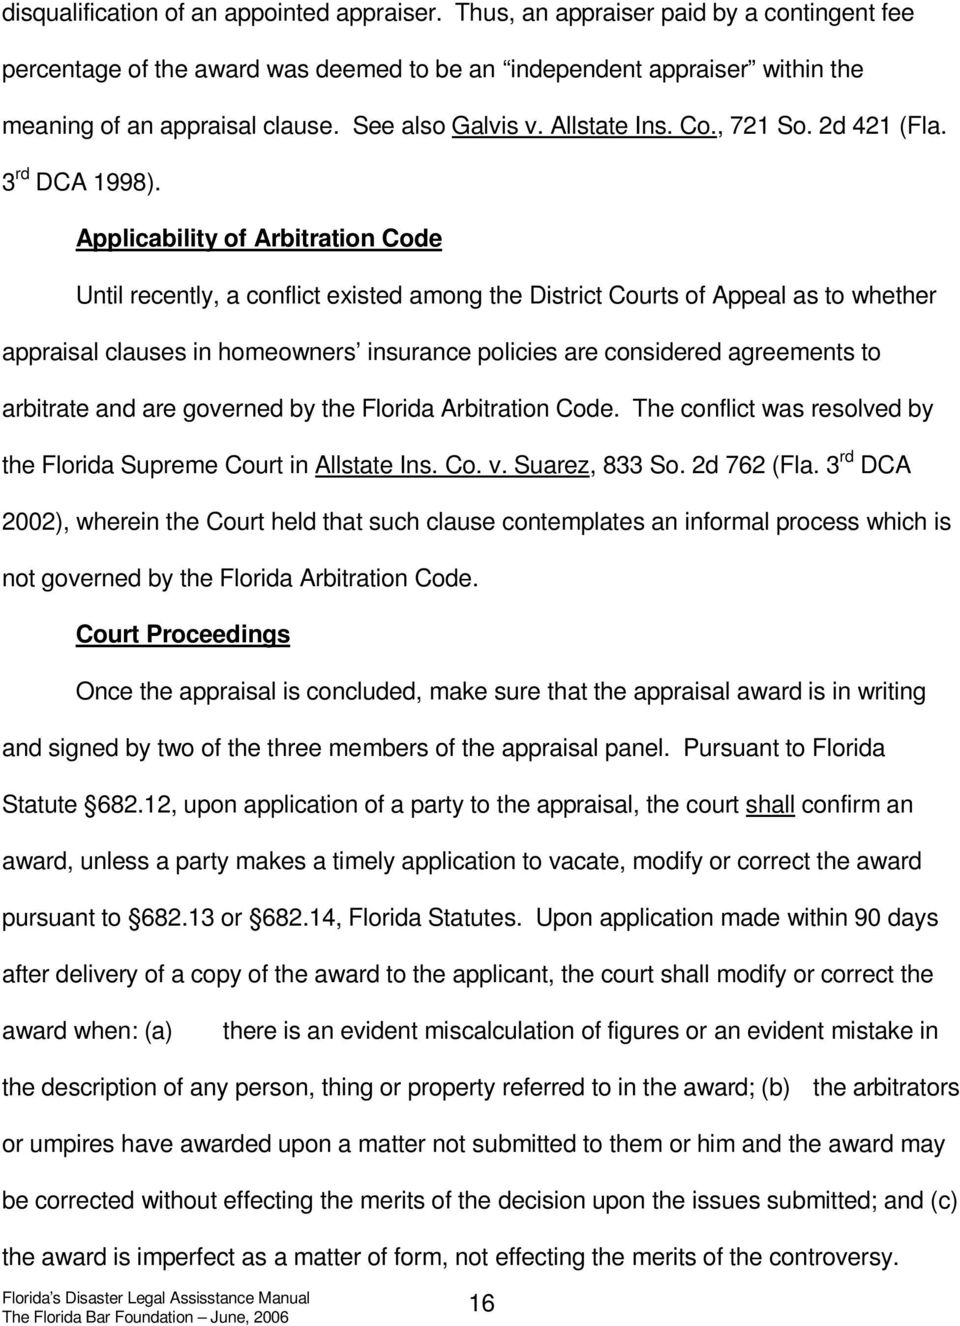 Applicability of Arbitration Code Until recently, a conflict existed among the District Courts of Appeal as to whether appraisal clauses in homeowners insurance policies are considered agreements to